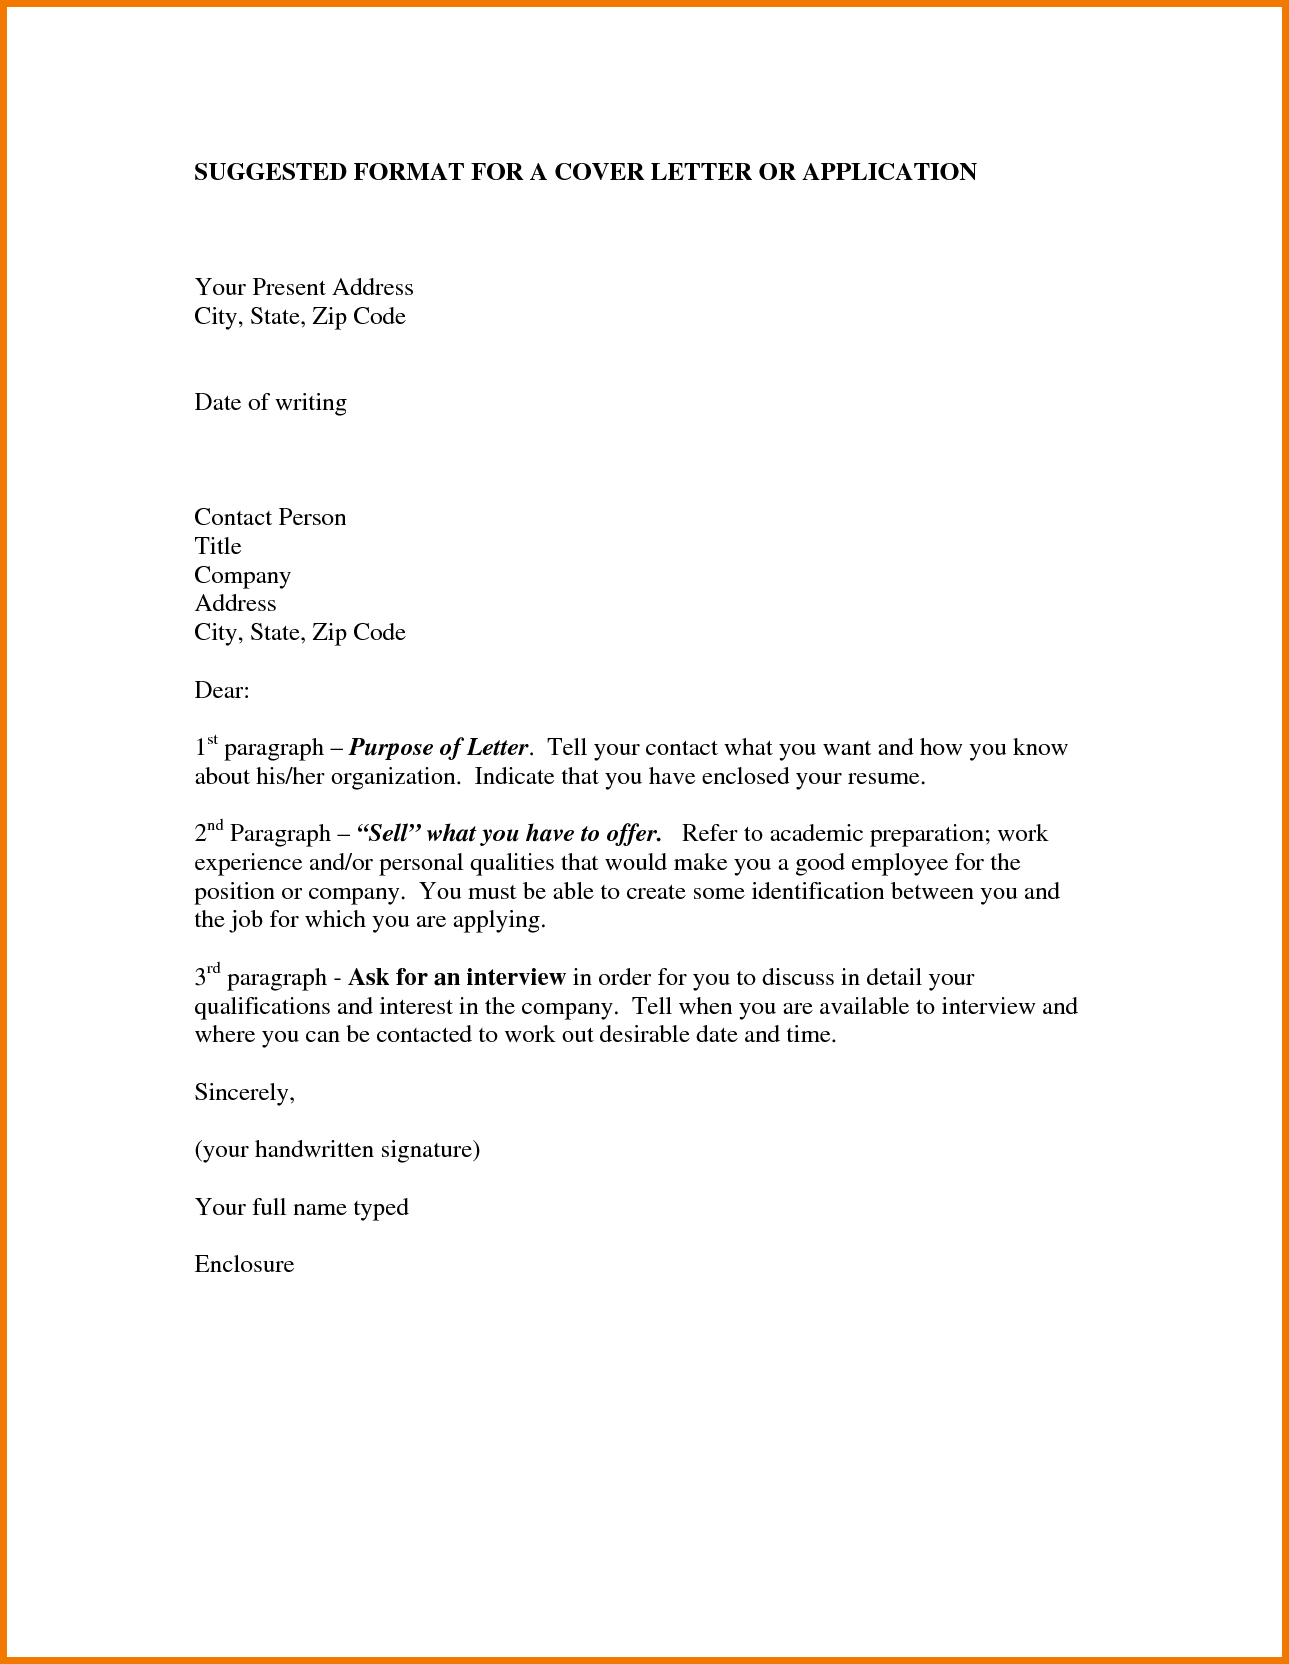 Formats Of Application Letter Application Letter Pinterest